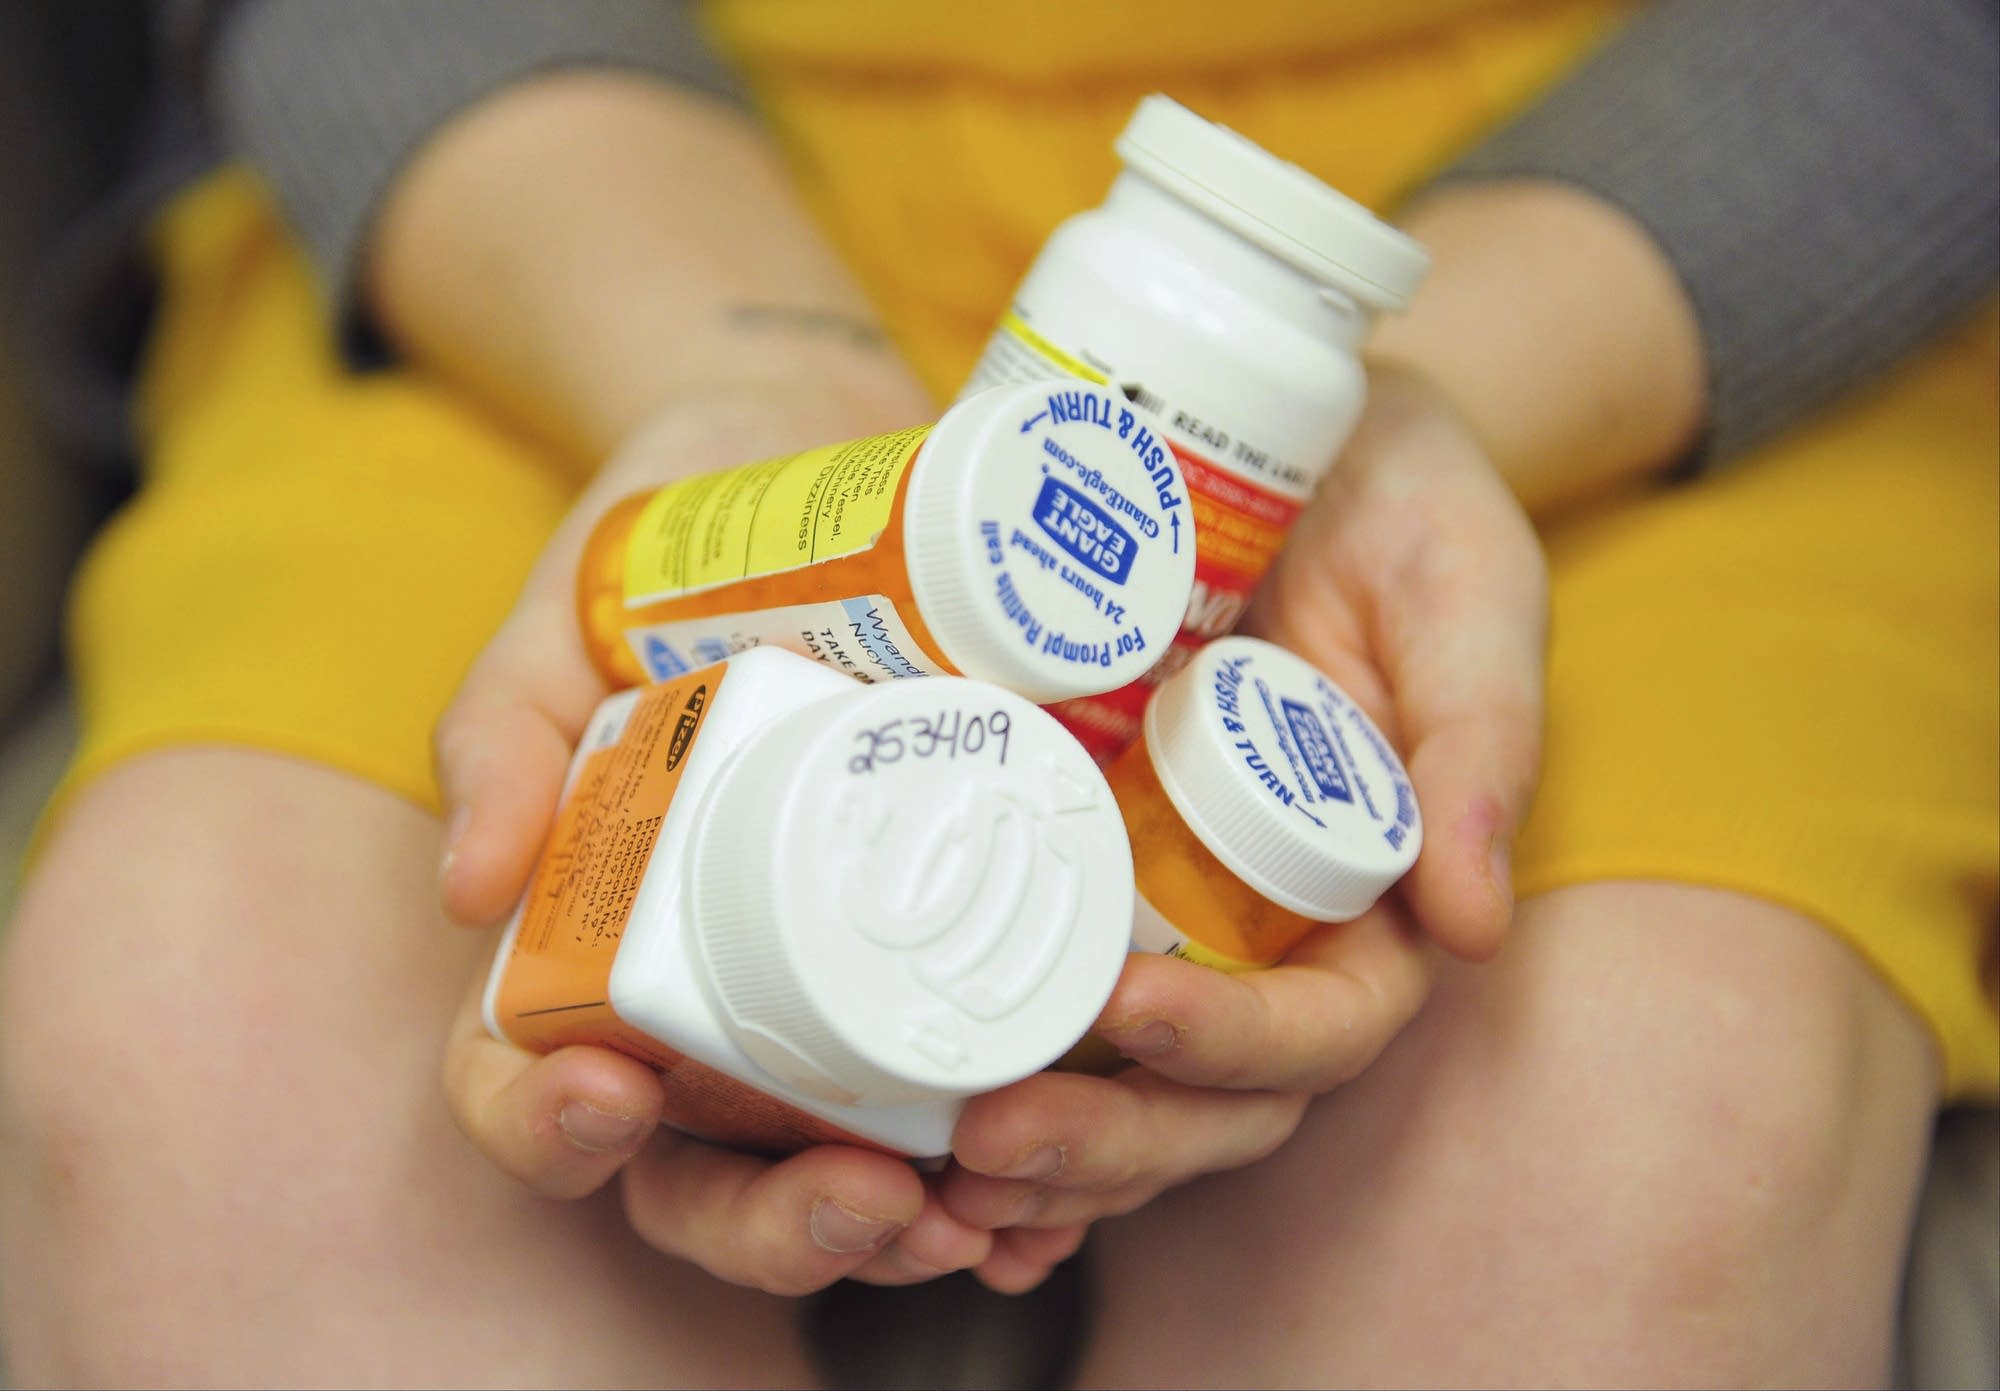 Heidi Wyandt, 27, holds a handful of her medication bottles